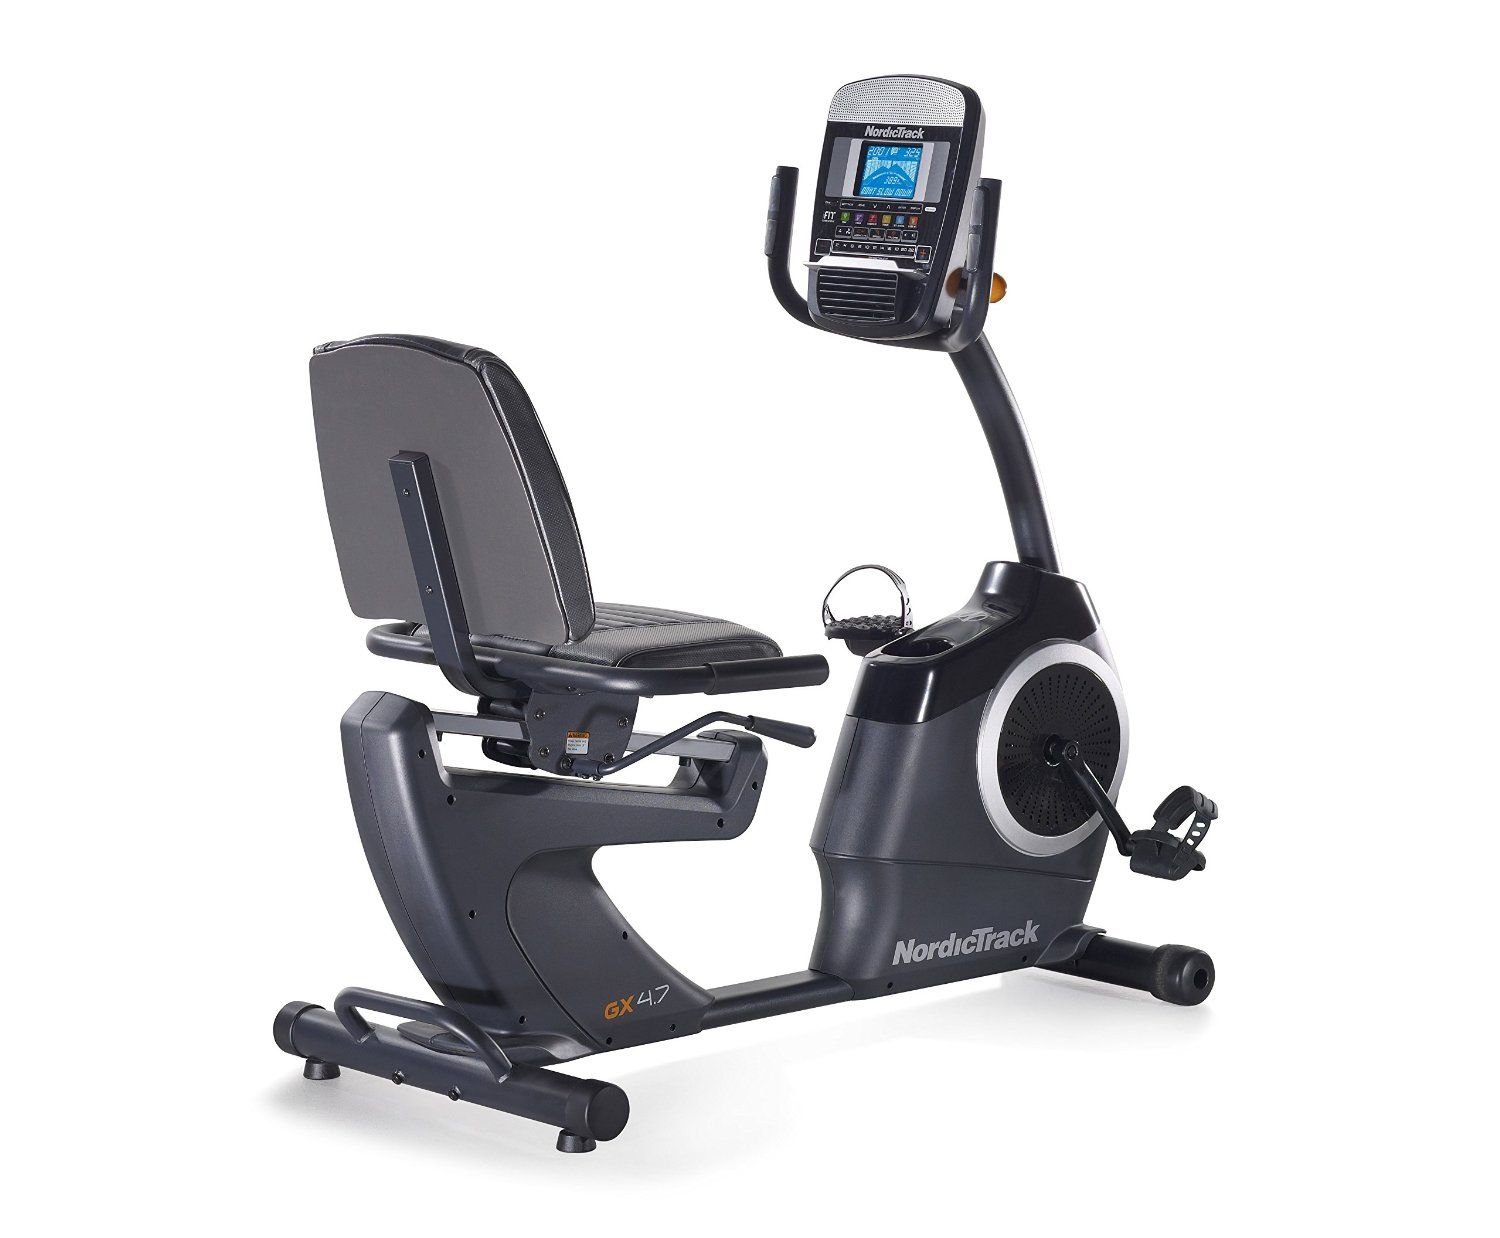 This Nordictrack Gx 4 7 Exercise Bike Is Compatible With Ifit So